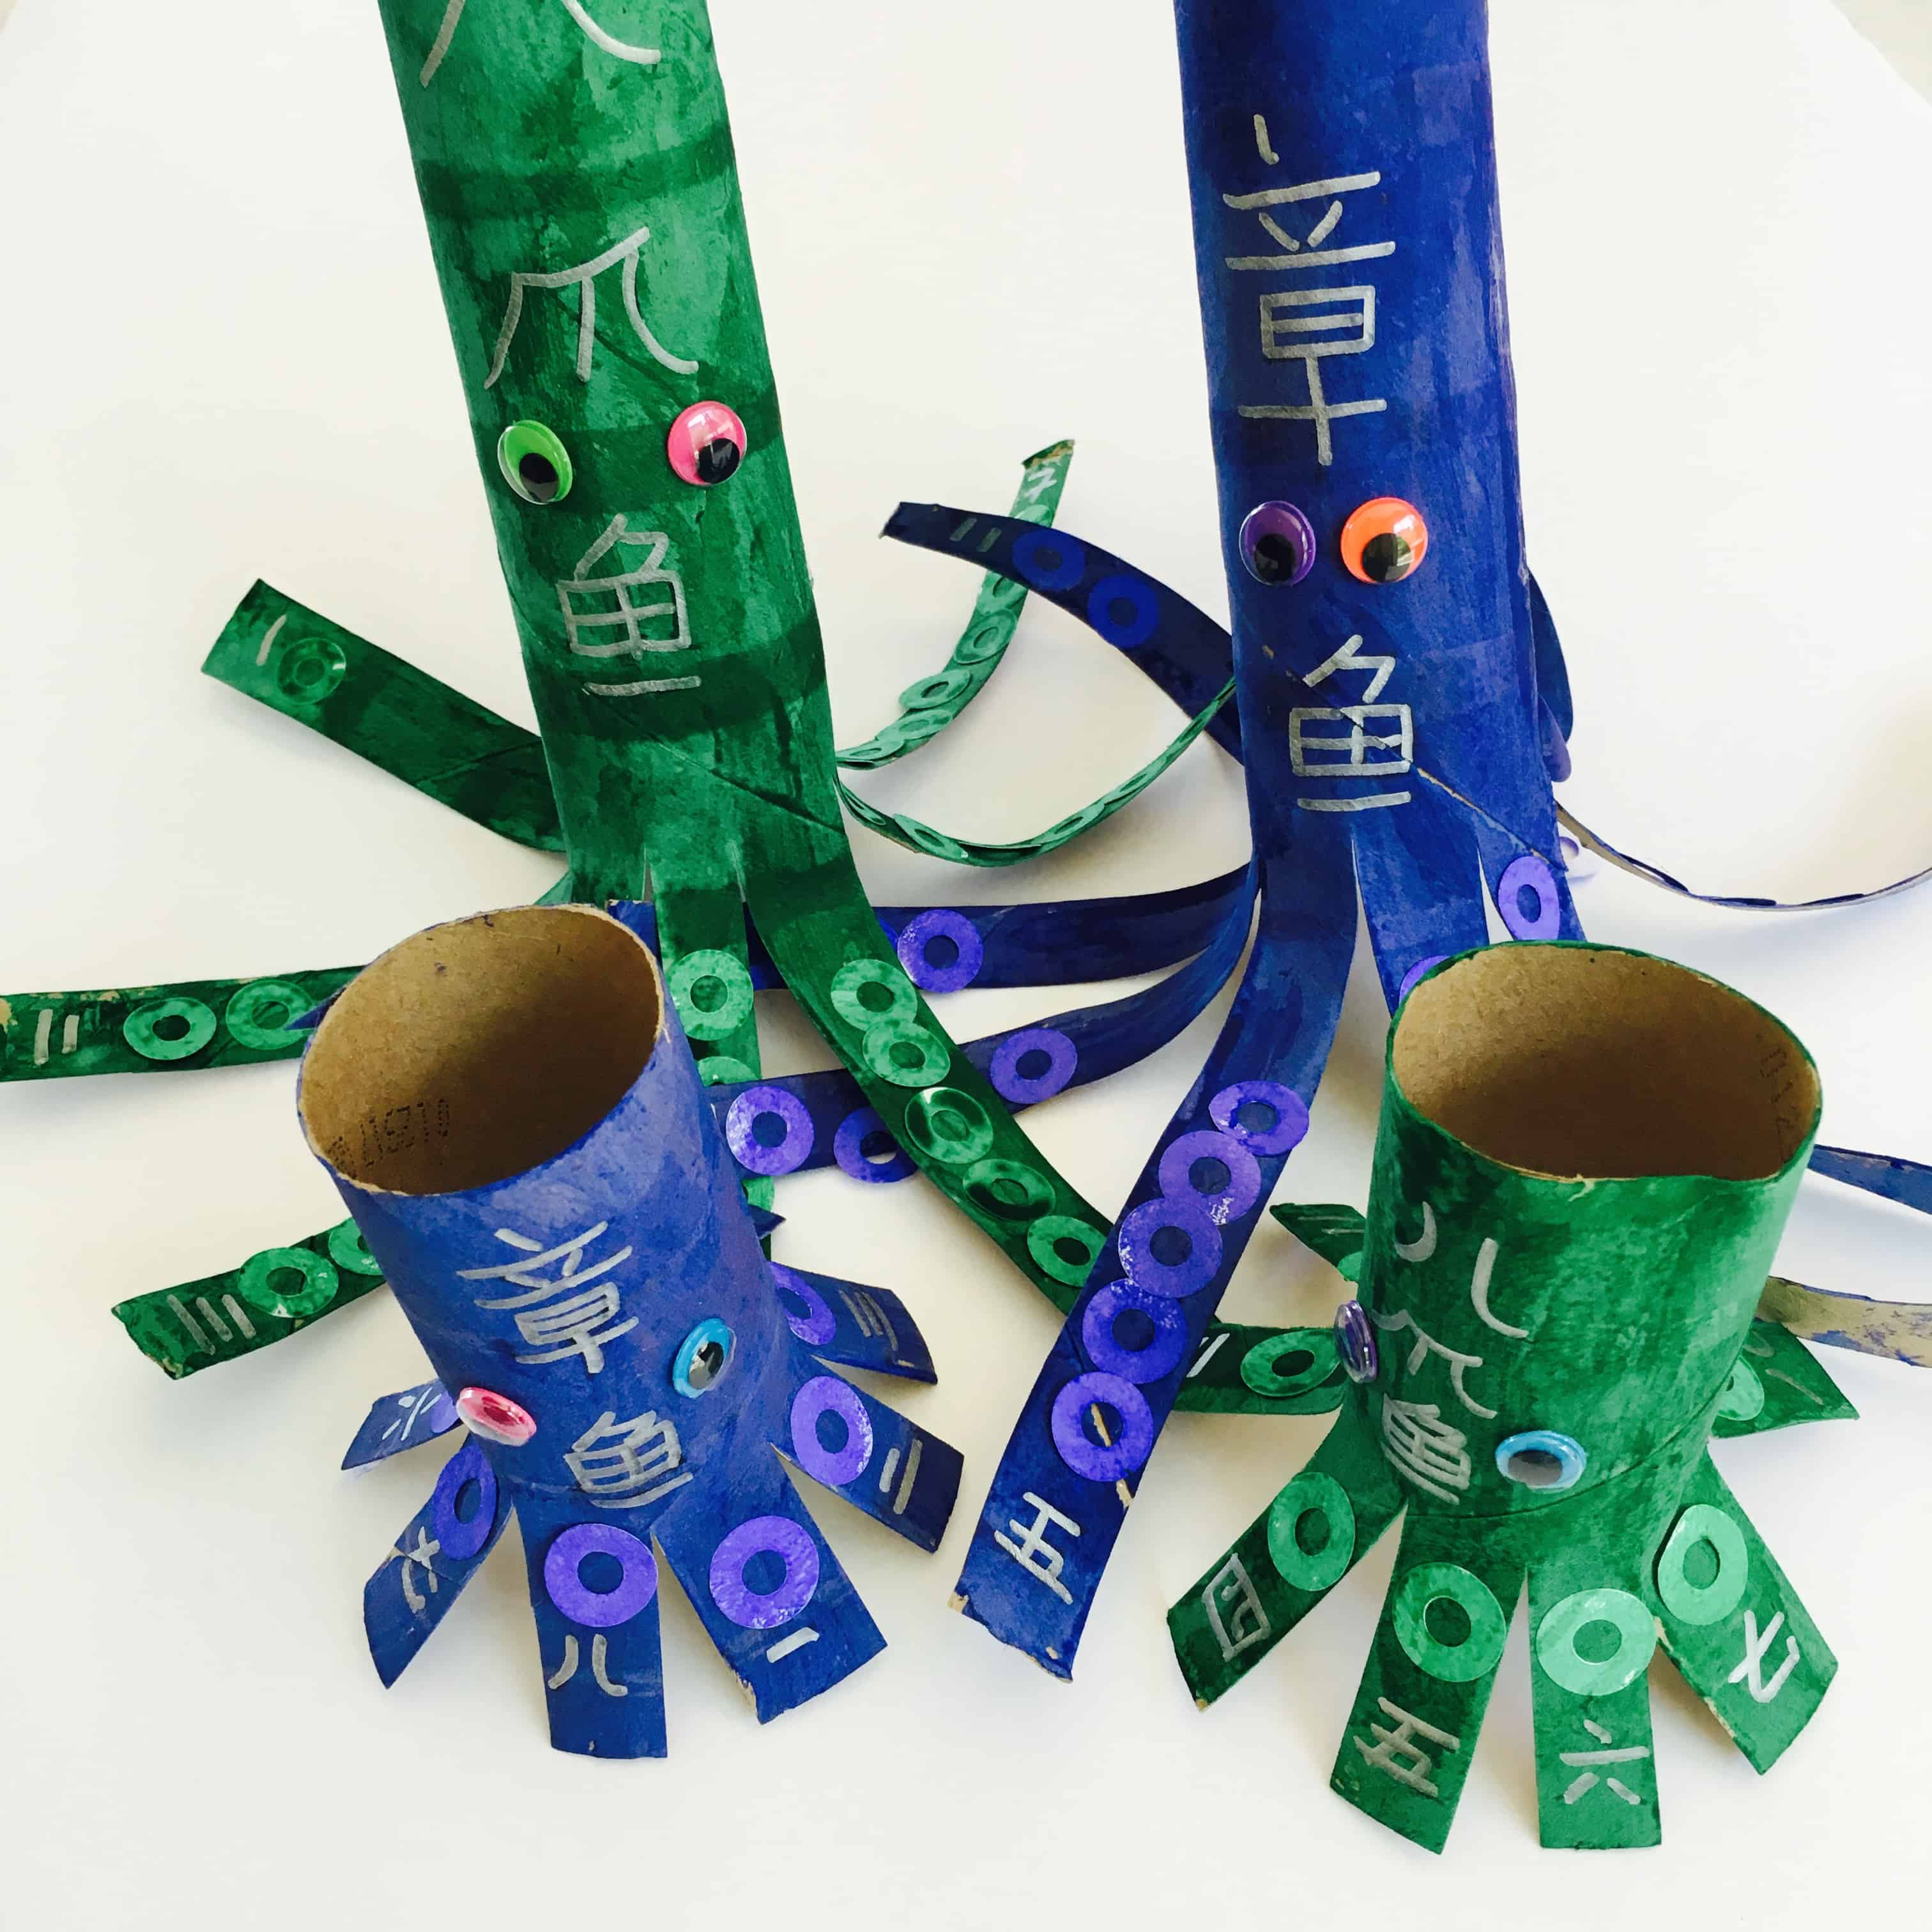 Paper Roll Octopus: A Chinese Counting Activity